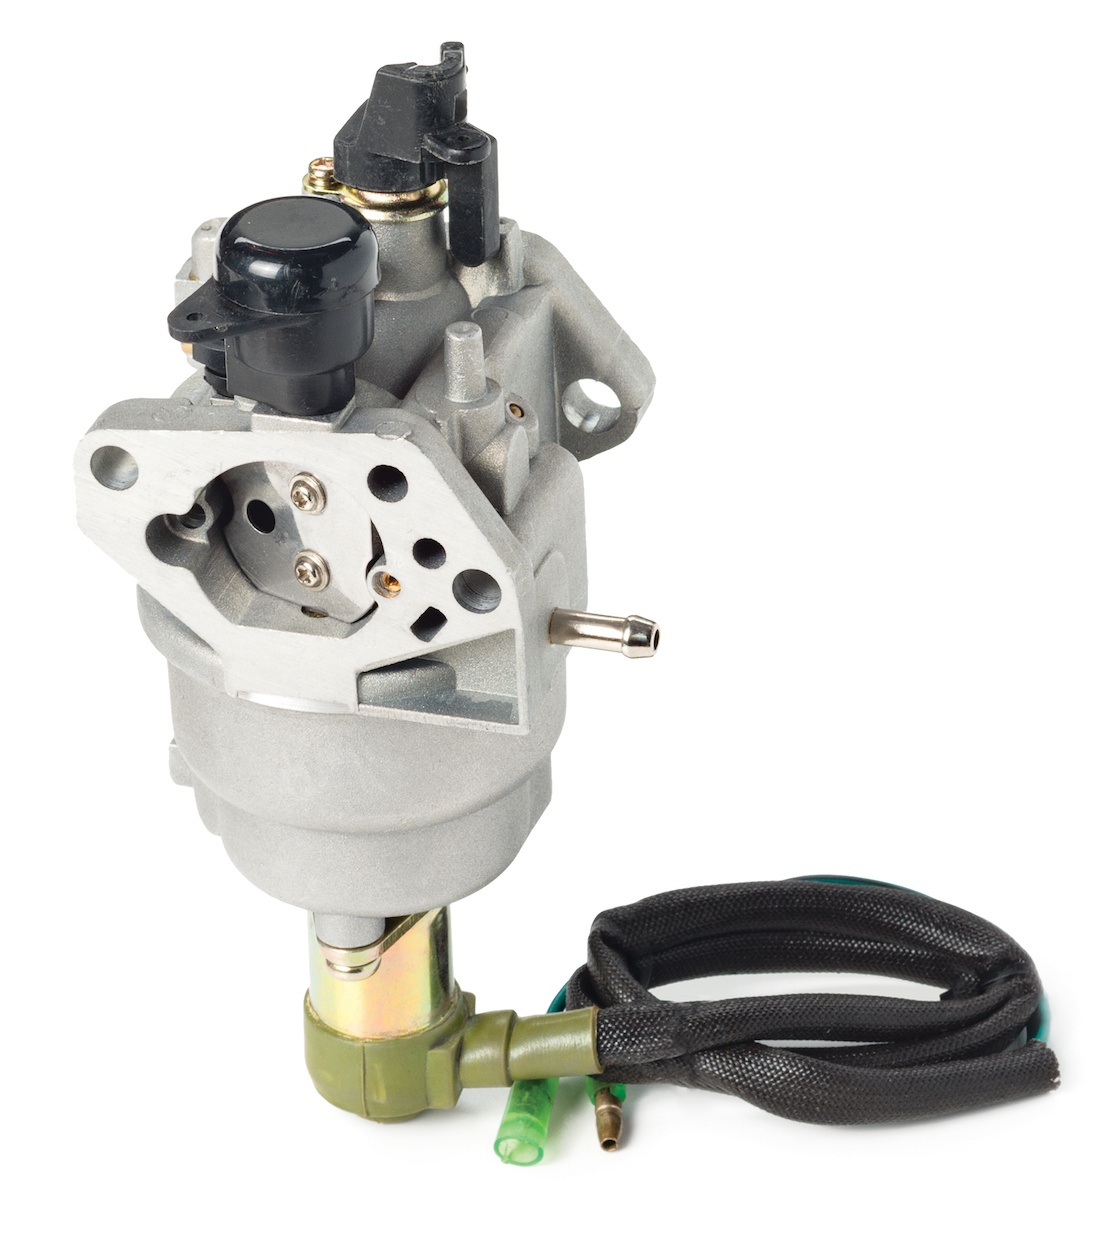 Small Engine Equipment Parts: Carb Assembly